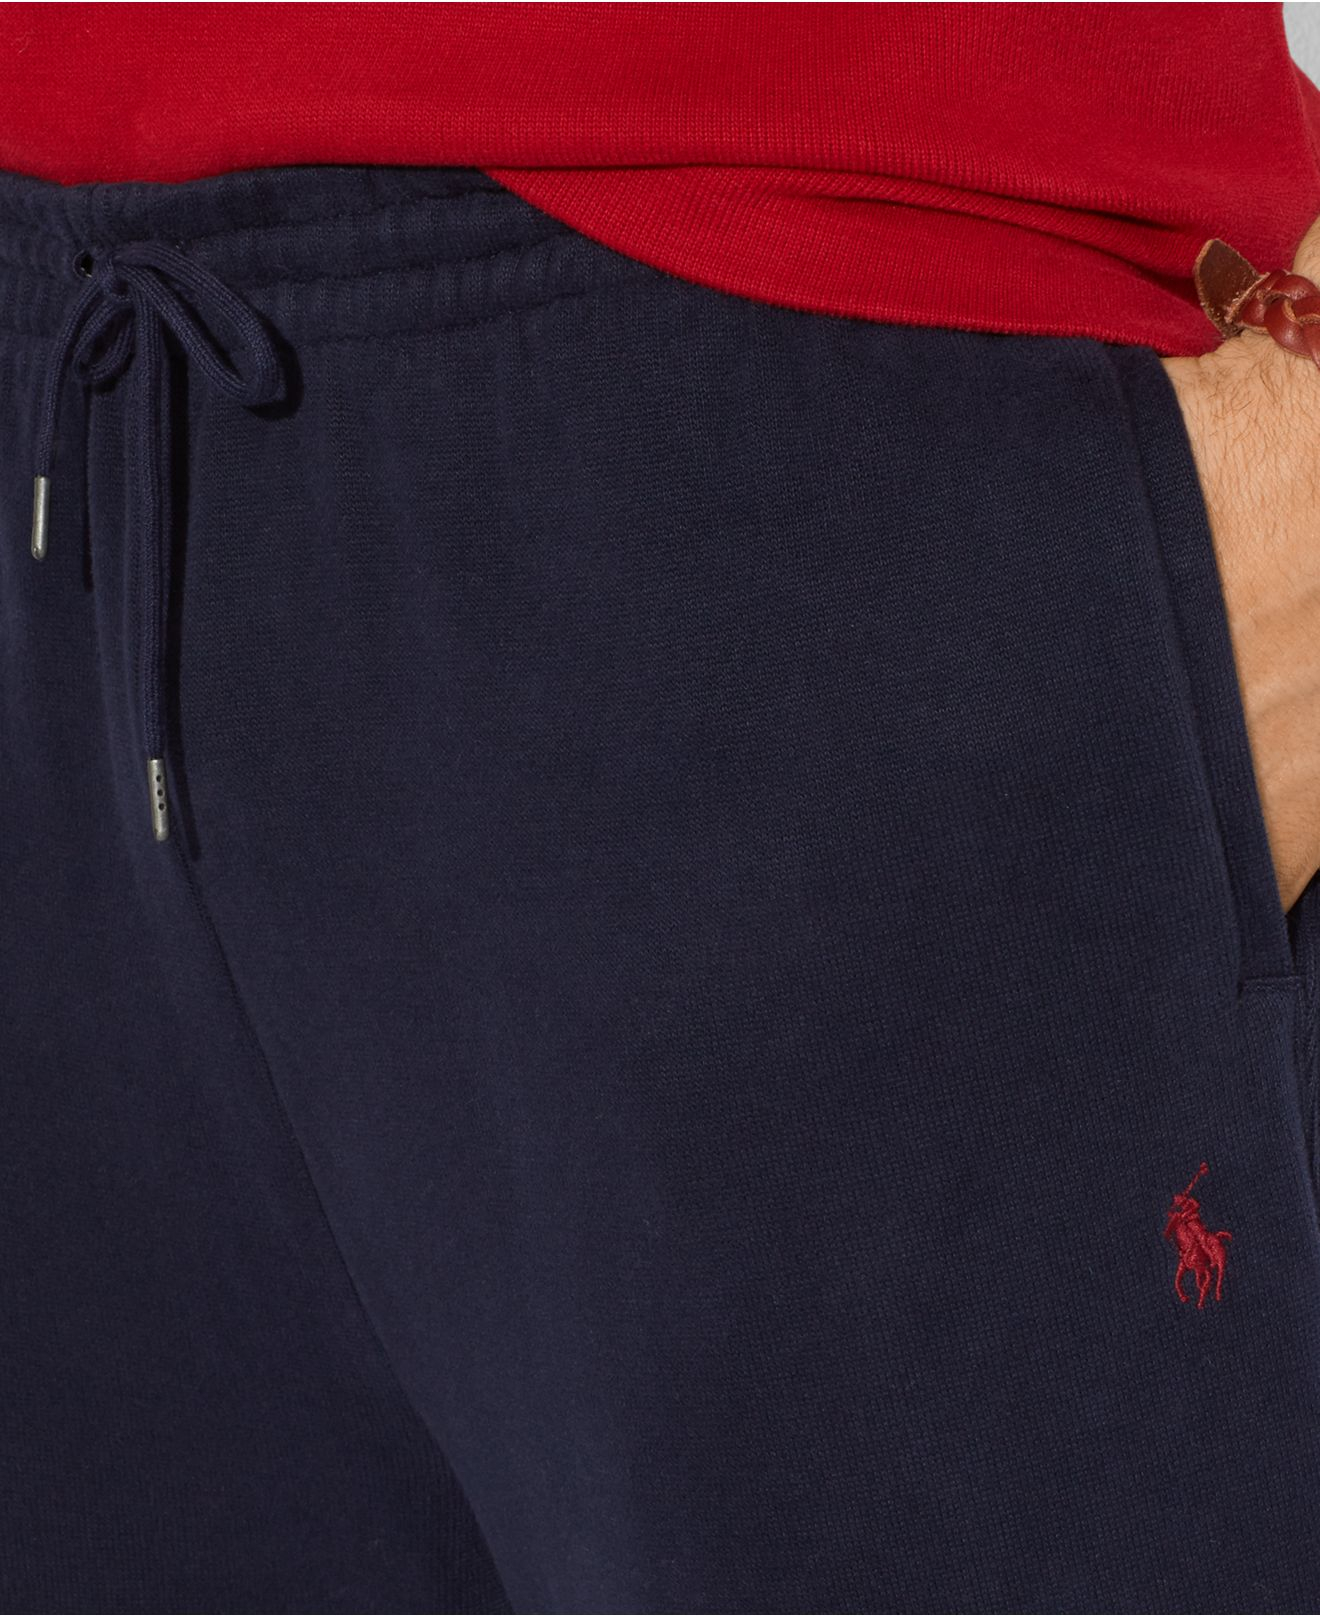 8cae6c8f1 Polo Ralph Lauren Big And Tall French-Rib Sweatpants in Blue for Men ...